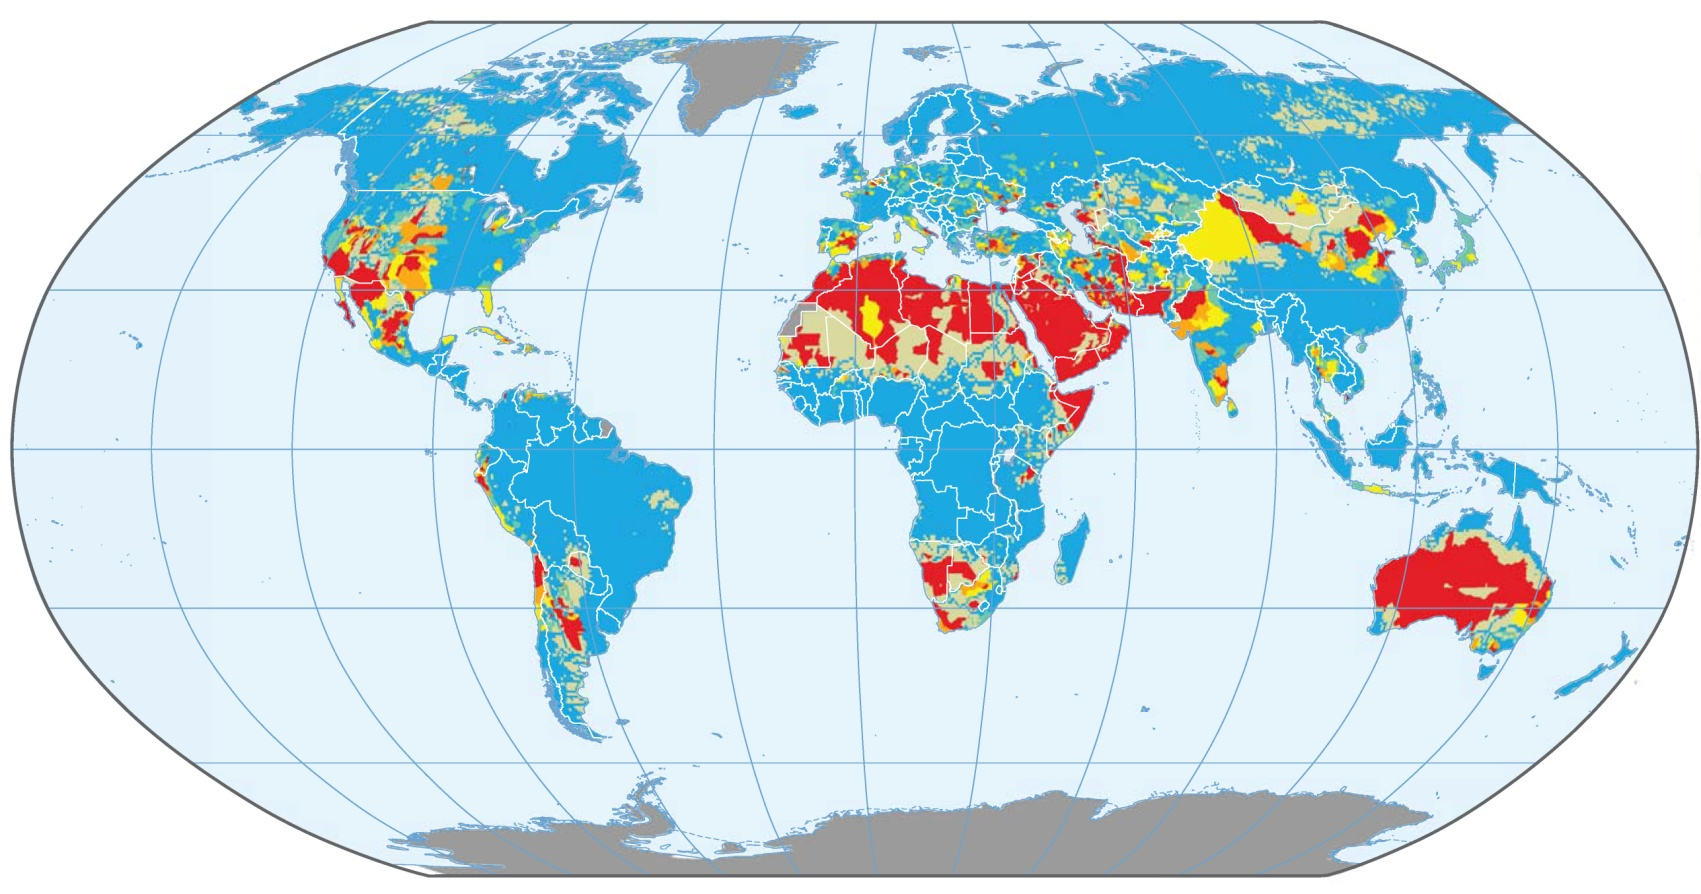 present-water-stress-world-map-drought